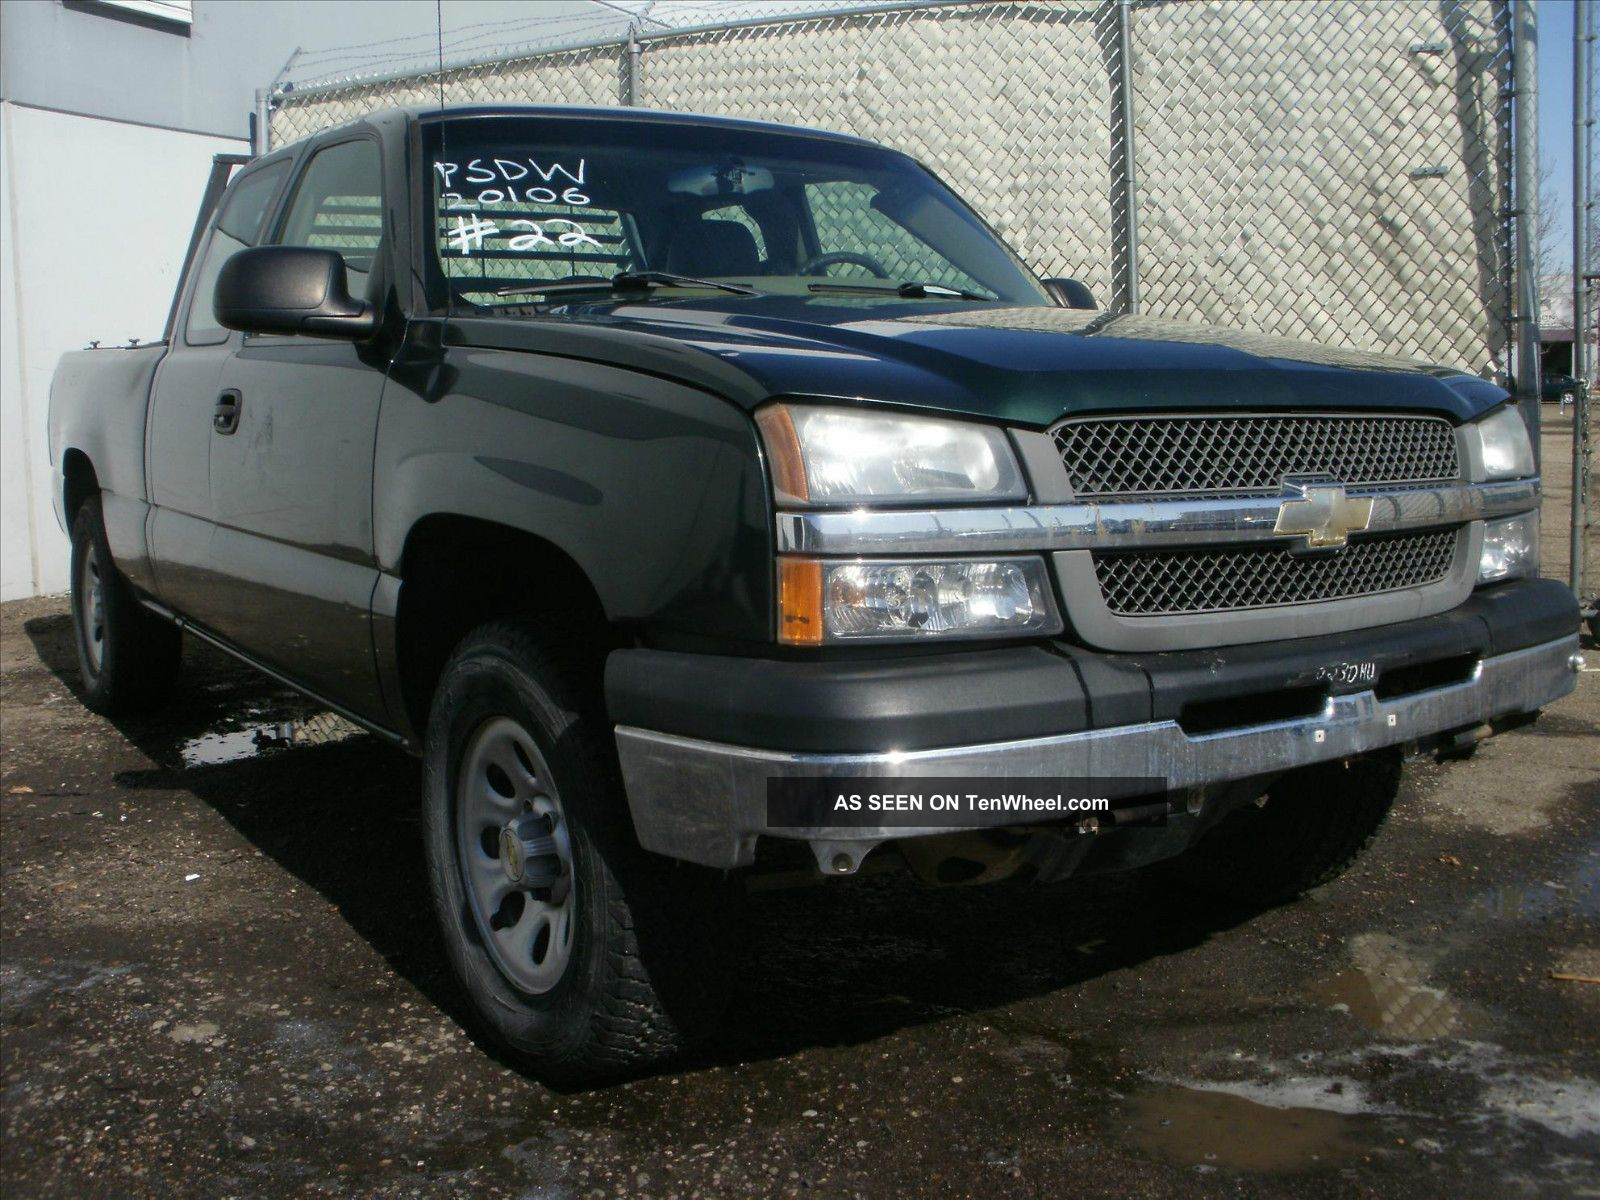 2005 chevy silverado 1500 ext cab 4x4 asset 20106. Black Bedroom Furniture Sets. Home Design Ideas